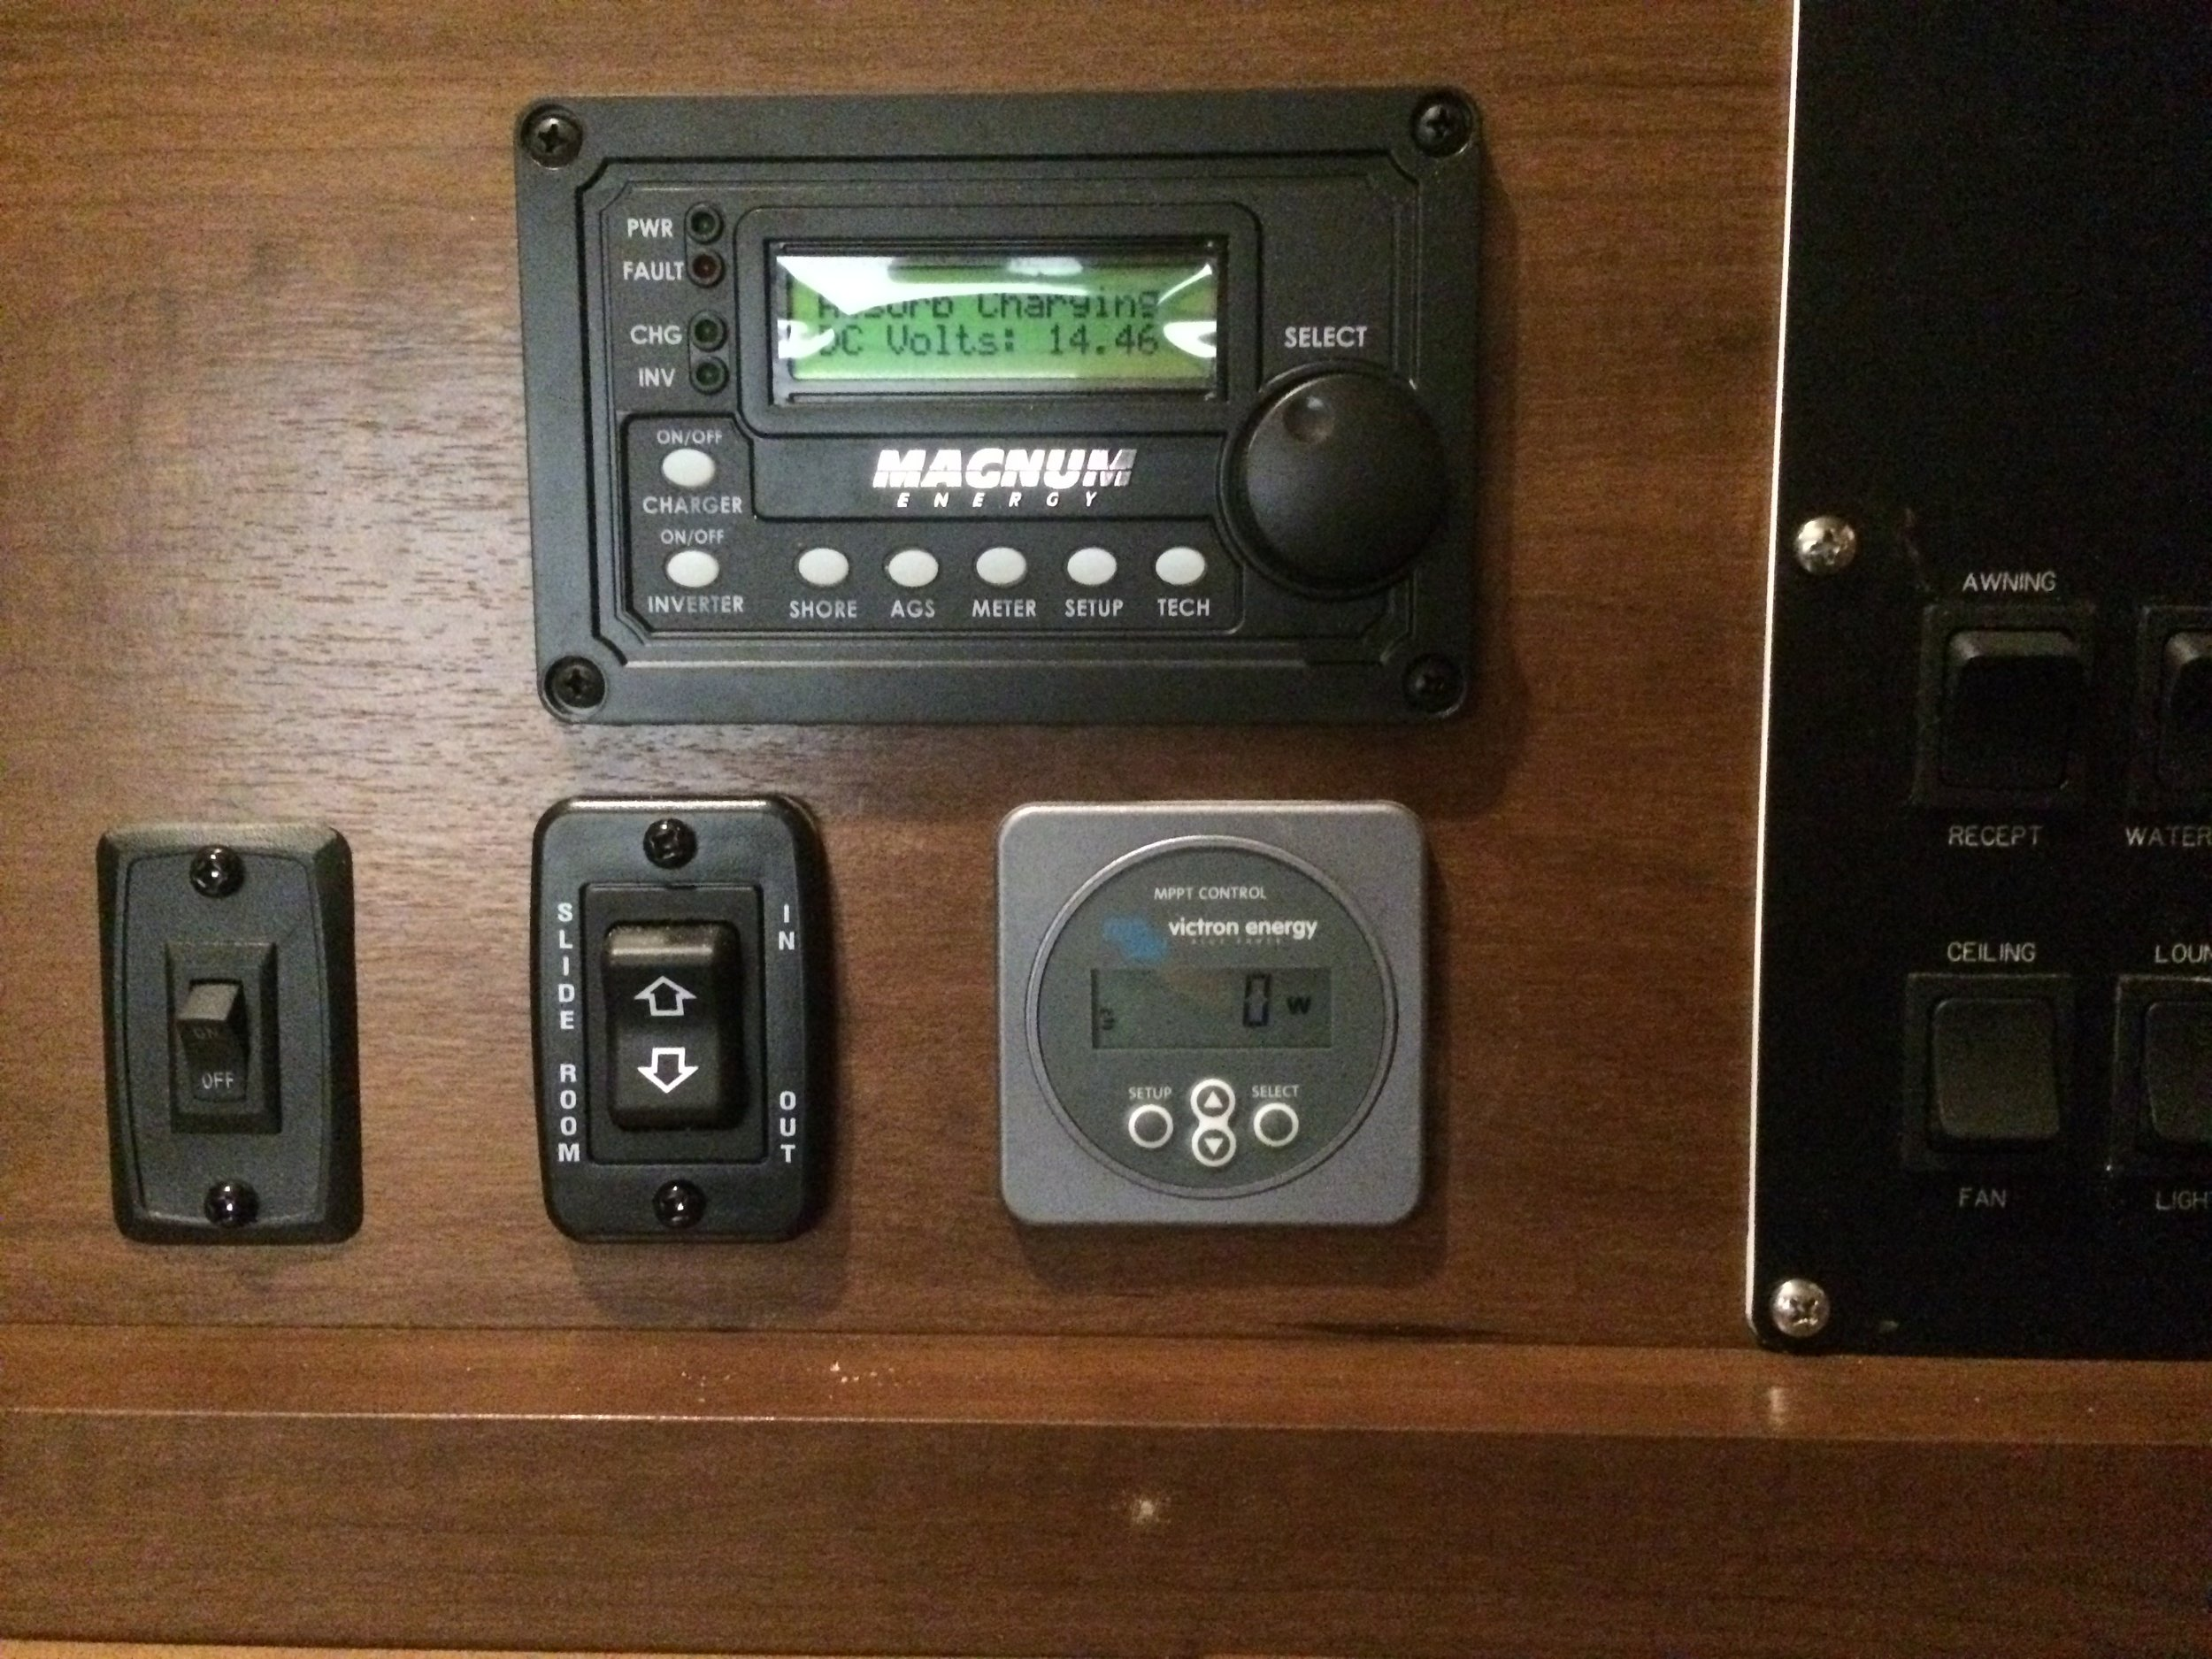 System controls and monitors